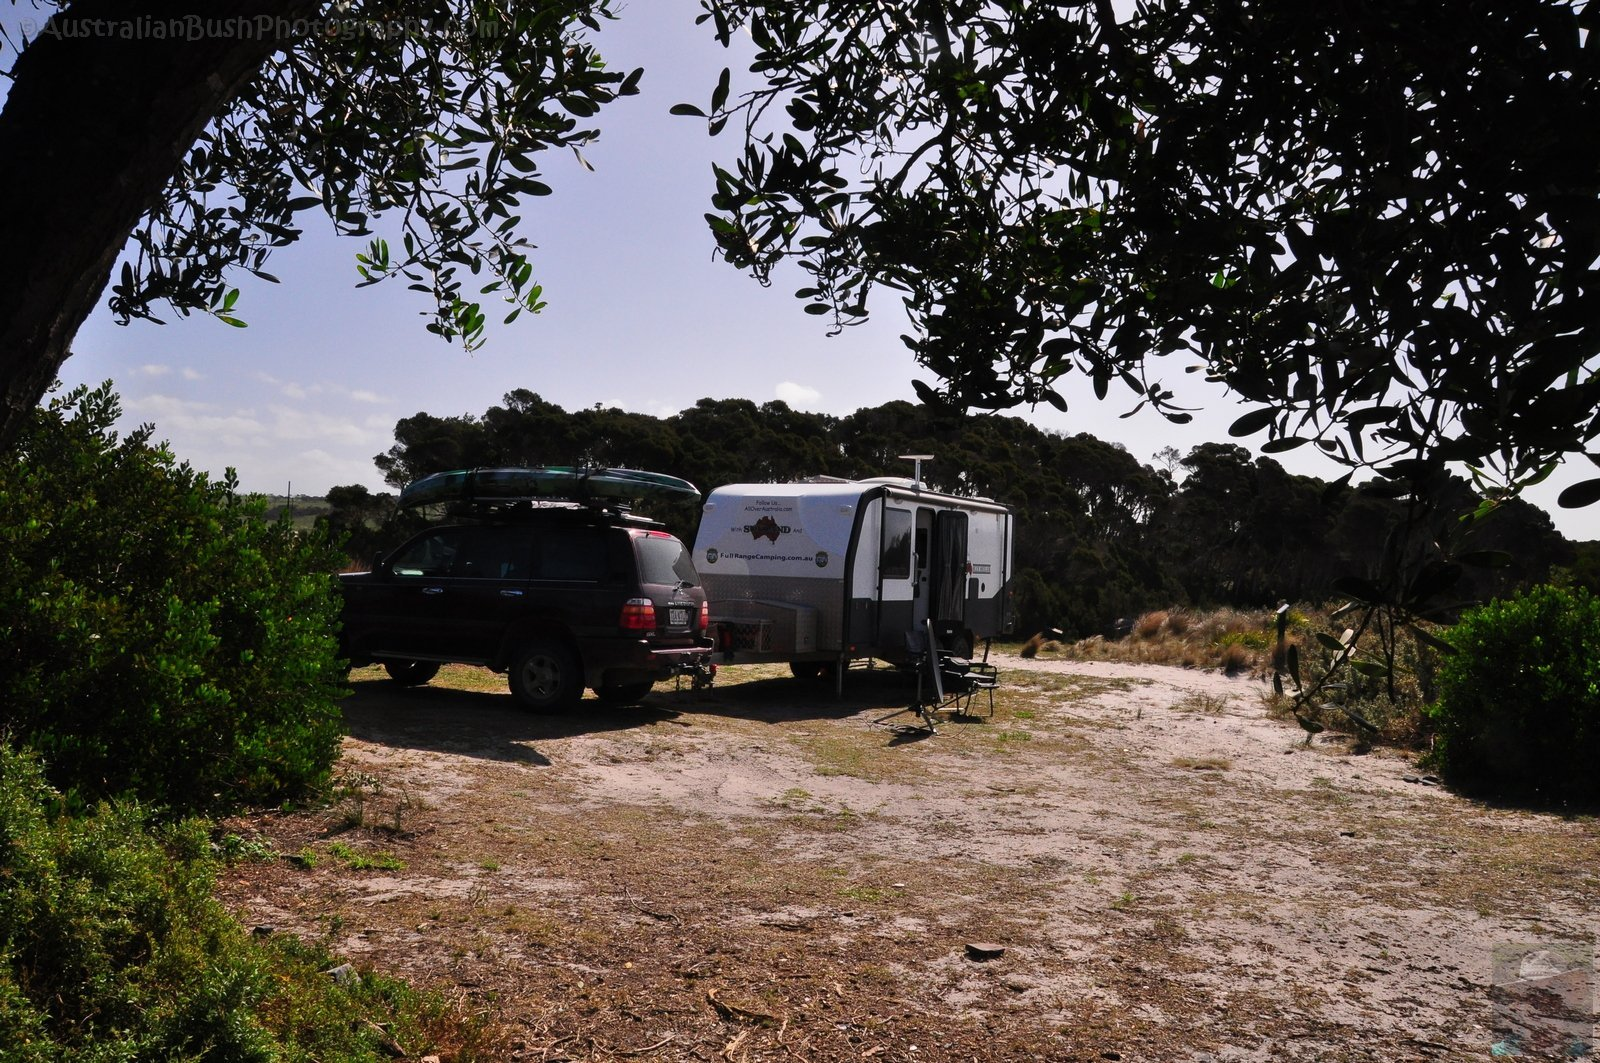 Our Camp at Policemans Point